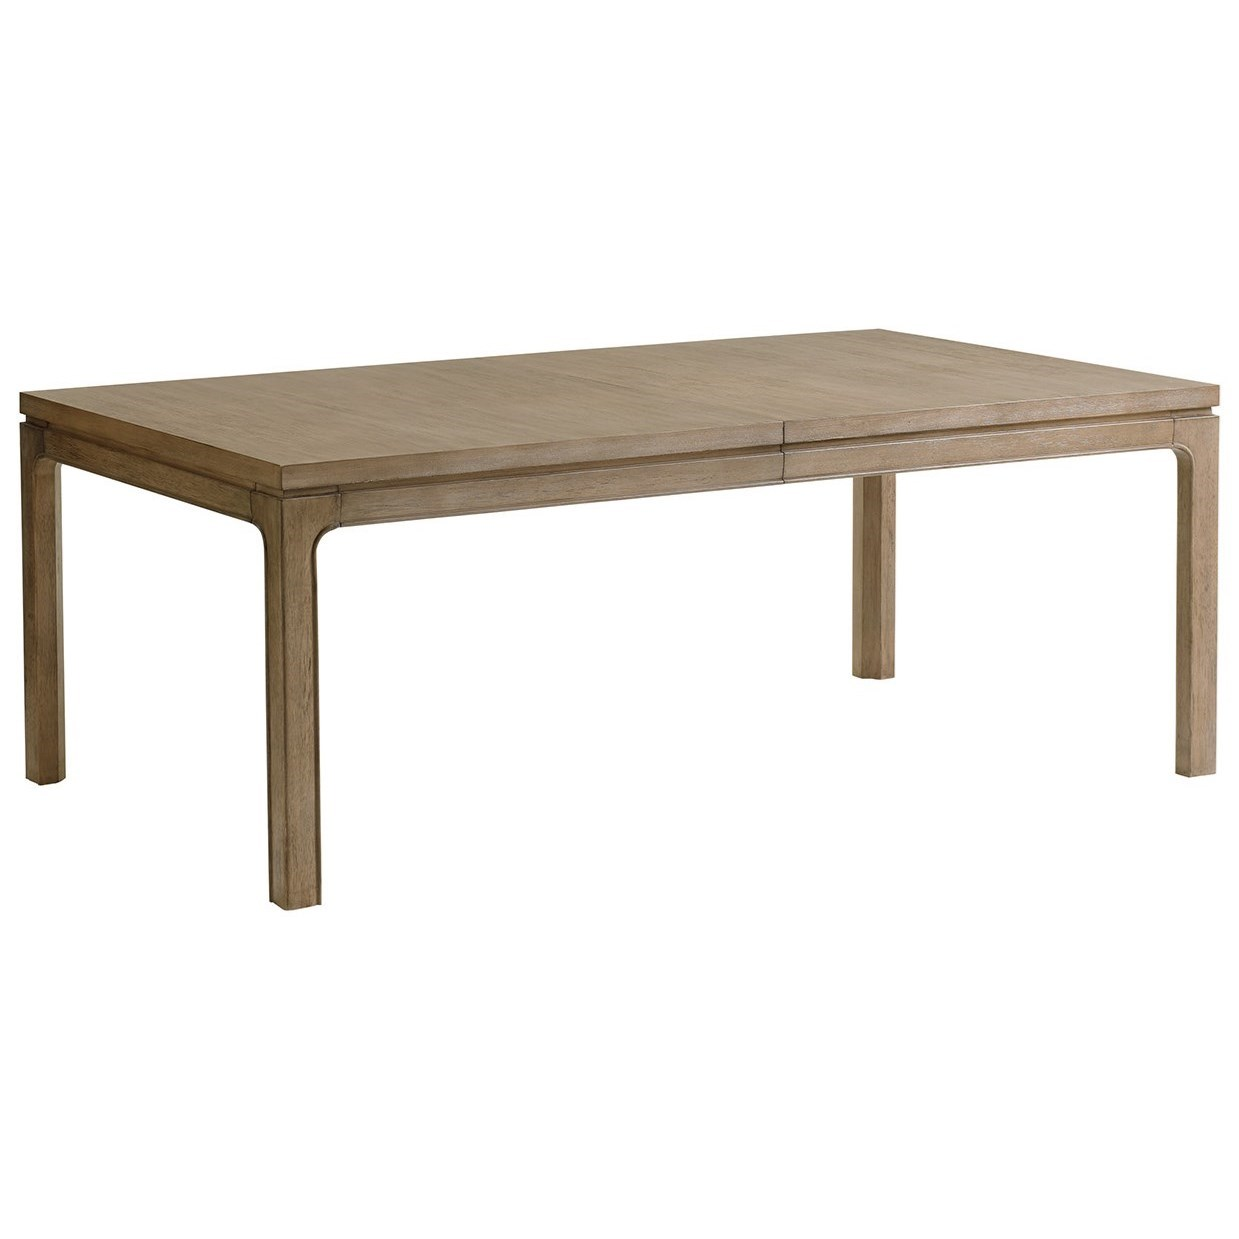 Lexington Shadow Play Concorde Rectangular Dining Table - Item Number: 725-877